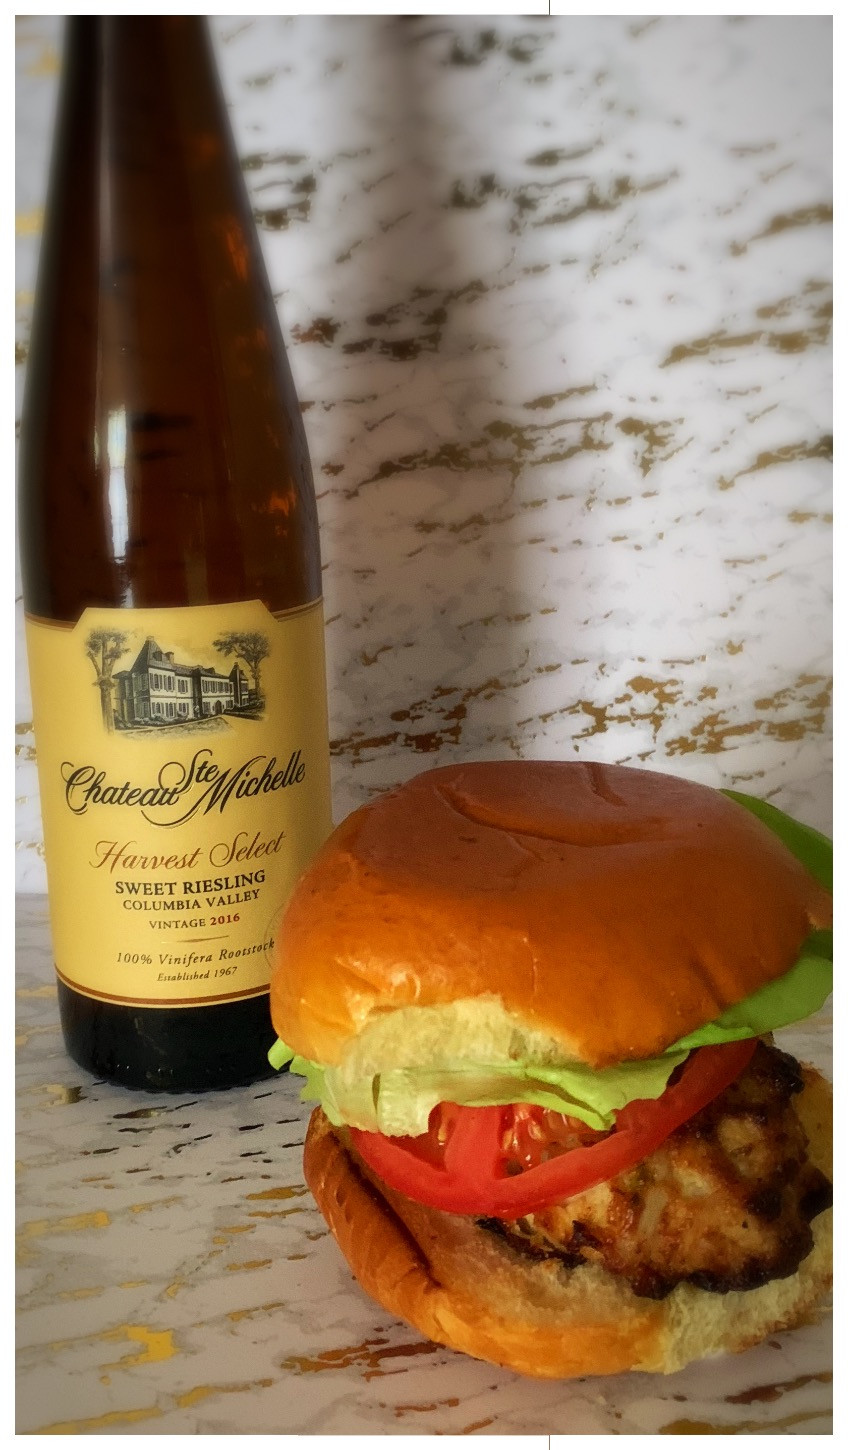 Sweet Riesling & crab cake sandwich with tomatoes, lettuce, and aioli sauce